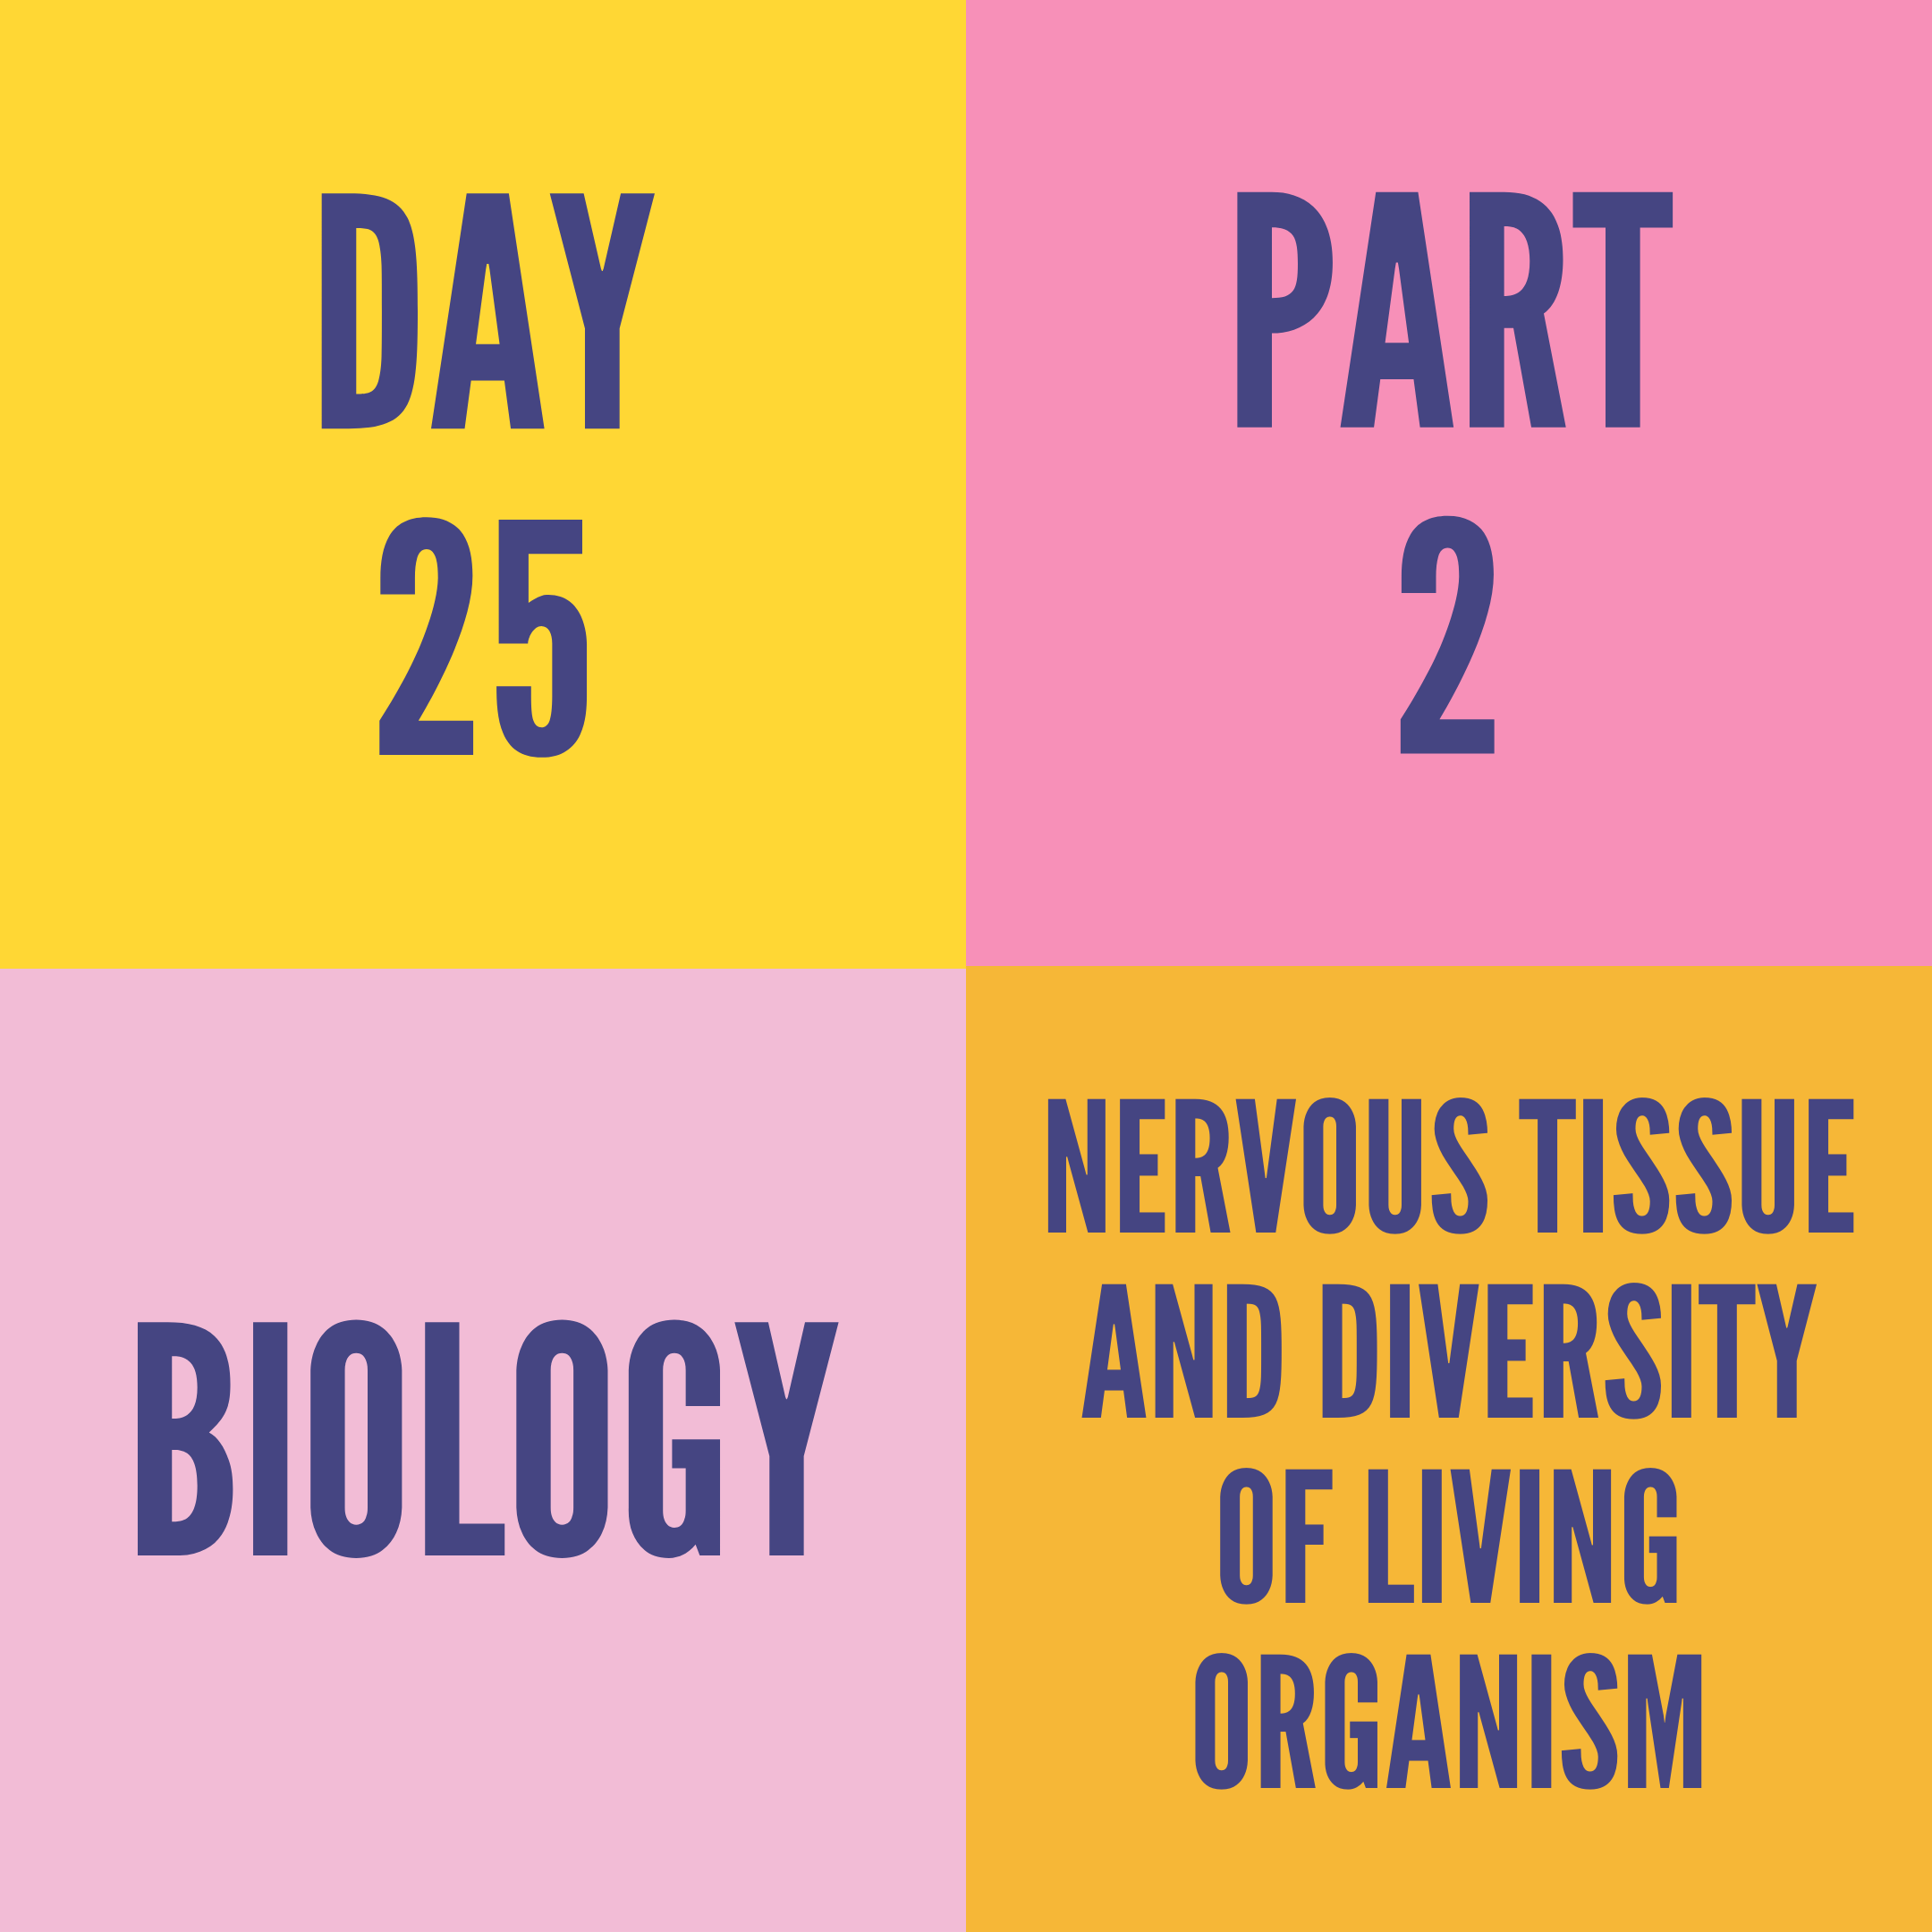 DAY-25 PART-2 NERVOUS TISSUE AND DIVERSITY OF LIVING ORGANISM